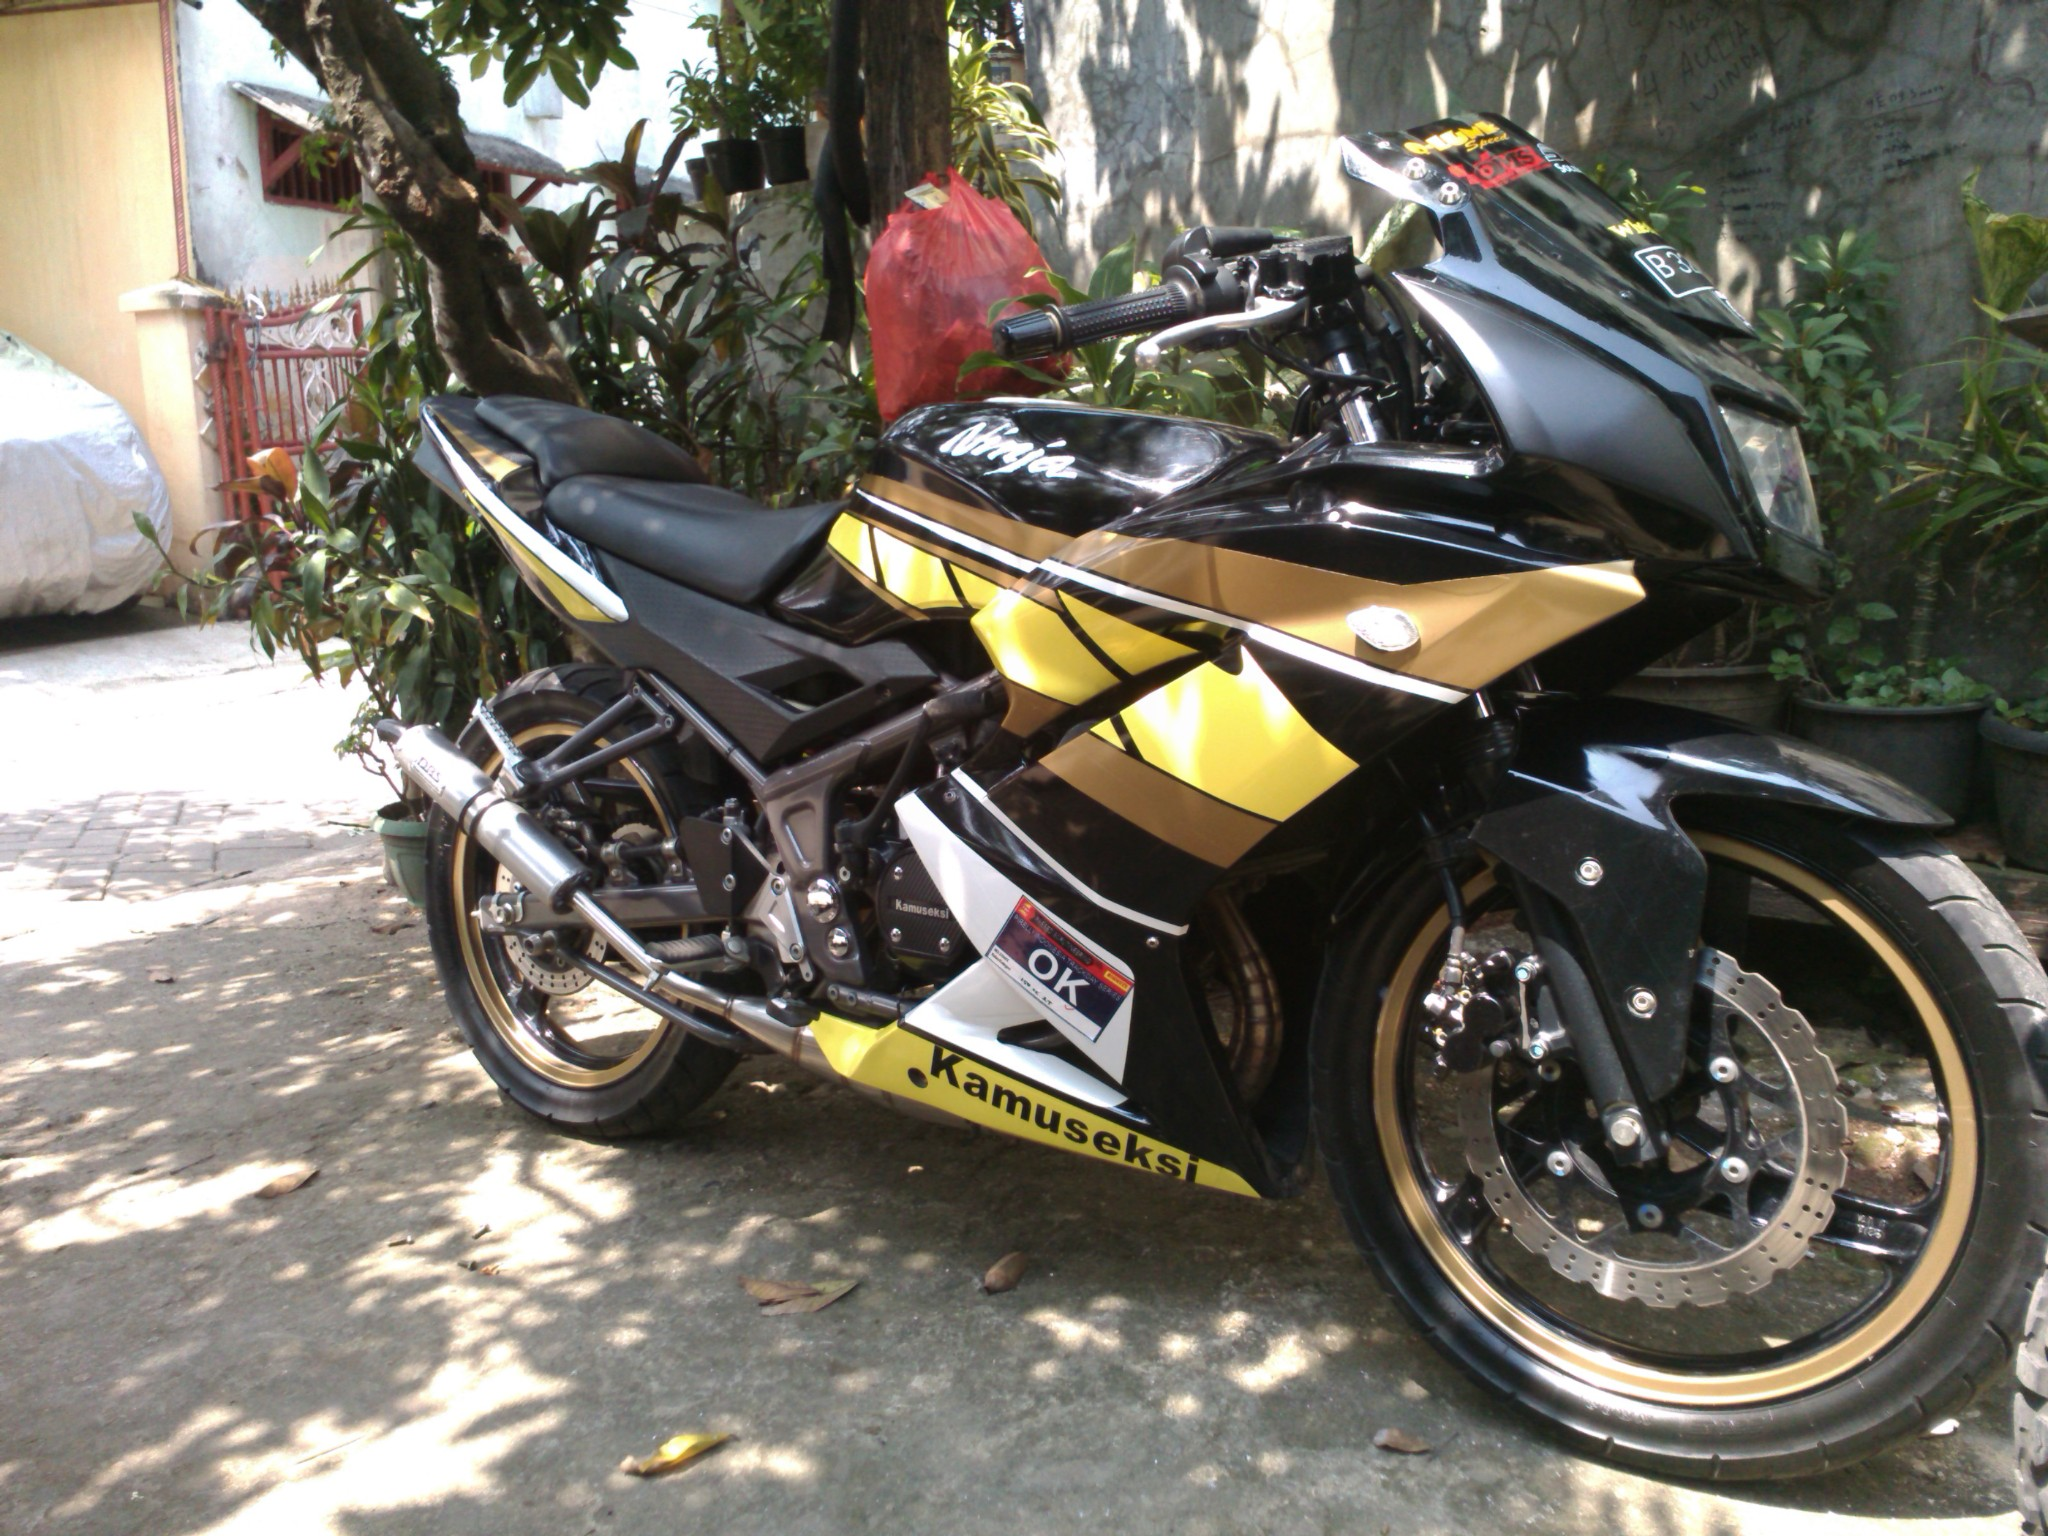 jual motor kawasaki ninja rr th 2012 - beta2321 | tokopedia